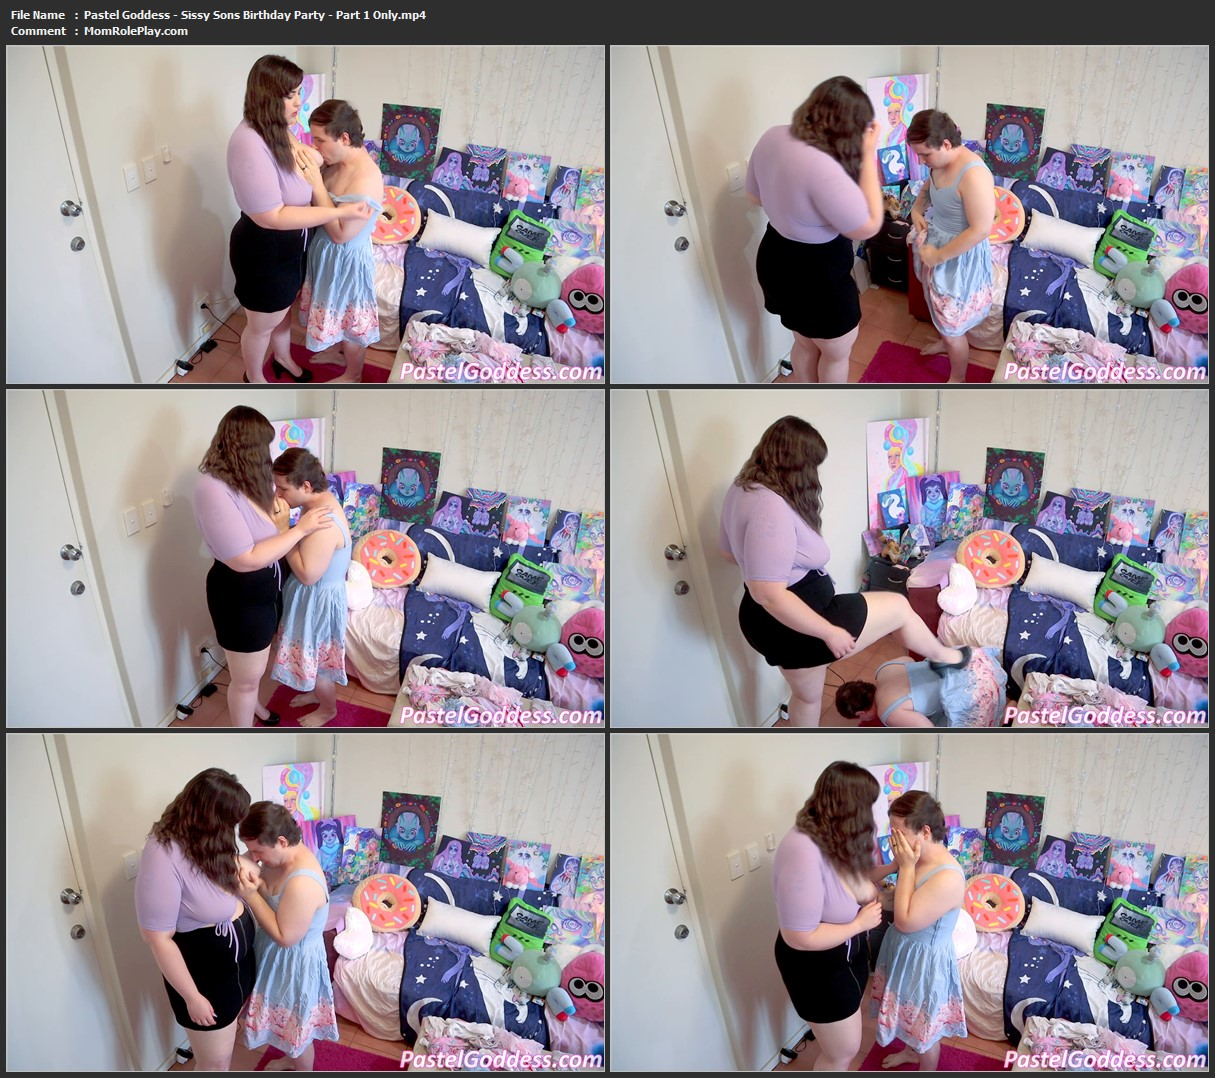 Pastel Goddess - Sissy Sons Birthday Party - Part 1 Only